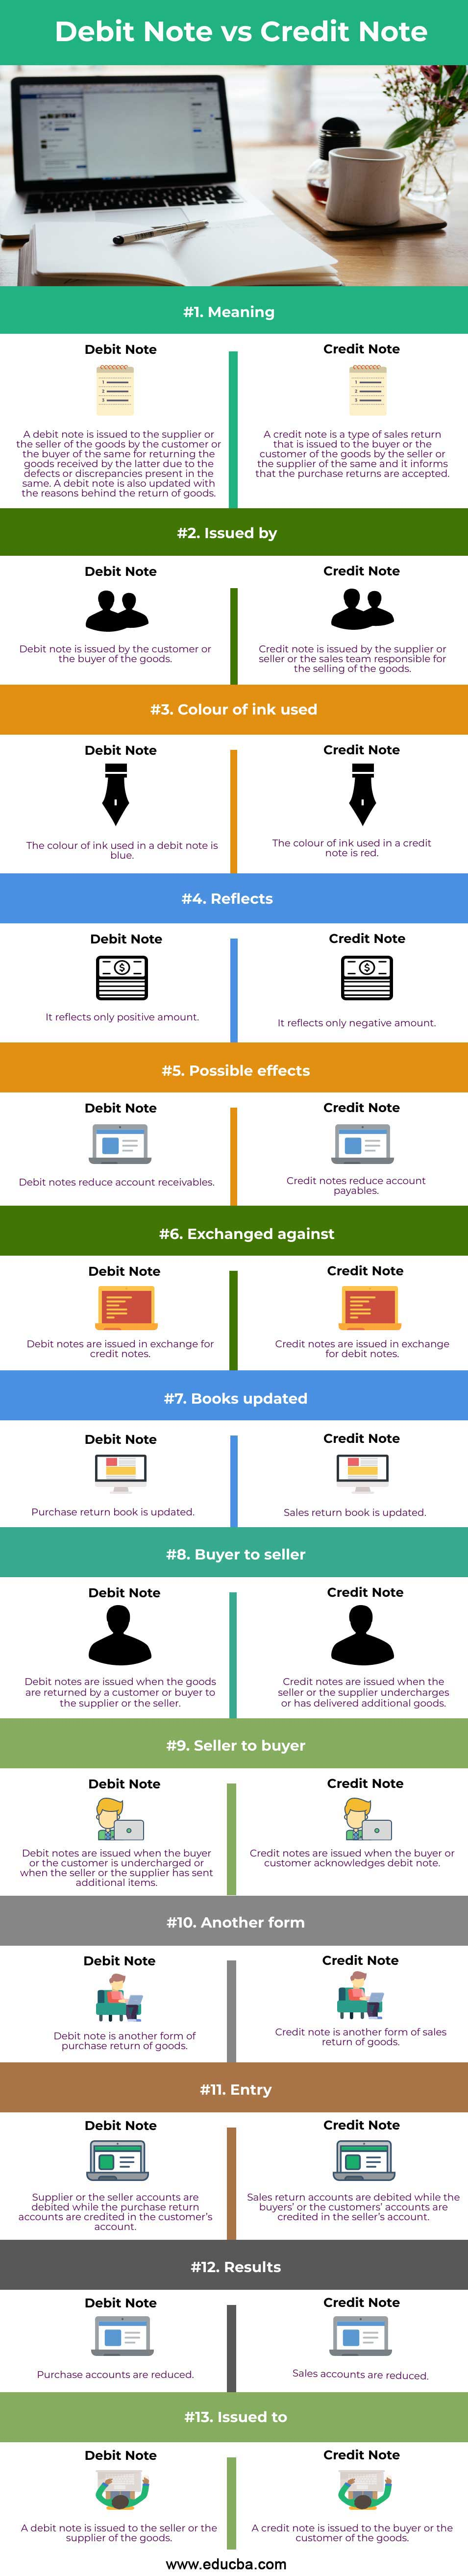 Debit Note vs Credit Note-info